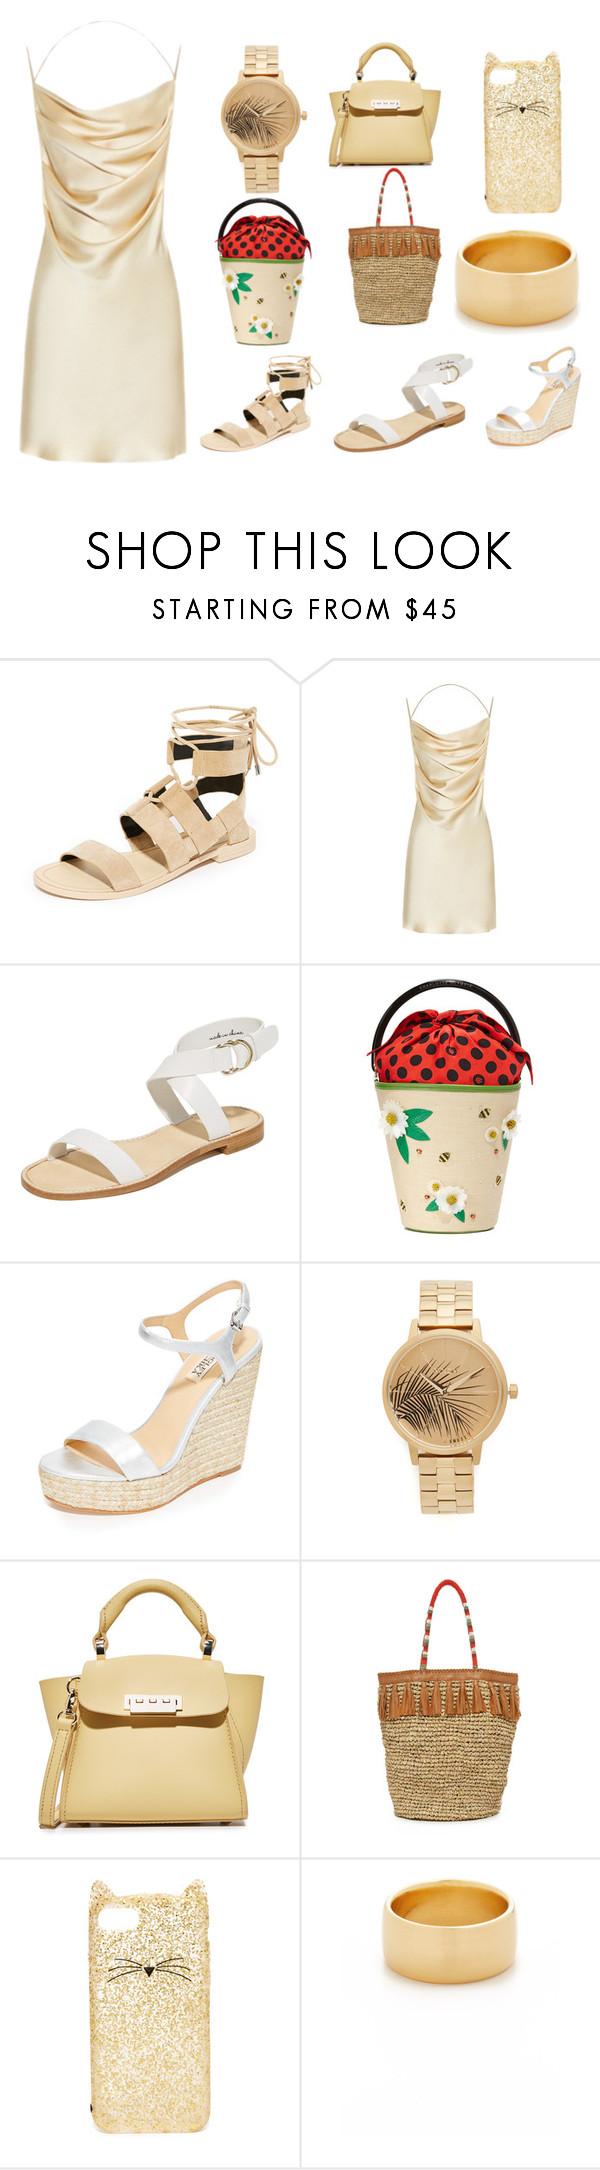 """Running Sale"" by cate-jennifer ❤ liked on Polyvore featuring Rebecca Minkoff, Yves Saint Laurent, Joie, Charlotte Olympia, Badgley Mischka, Nixon, ZAC Zac Posen, Cleobella, Kate Spade and Soave Oro"